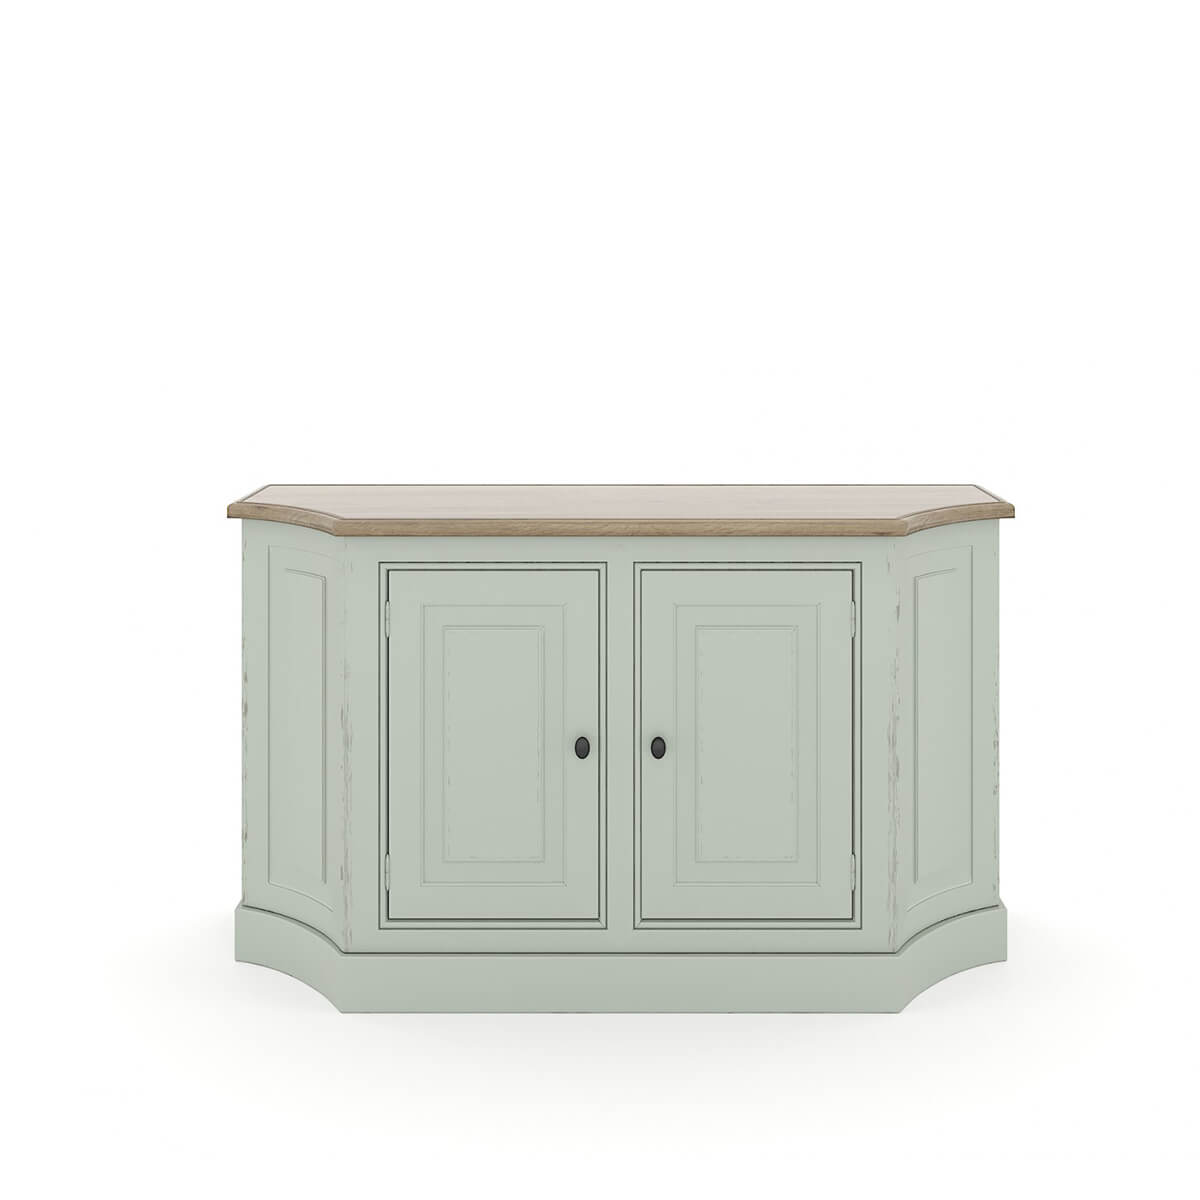 Modena-Best-Sideboard-in-Dubai-Green-CozyHome-Dubai